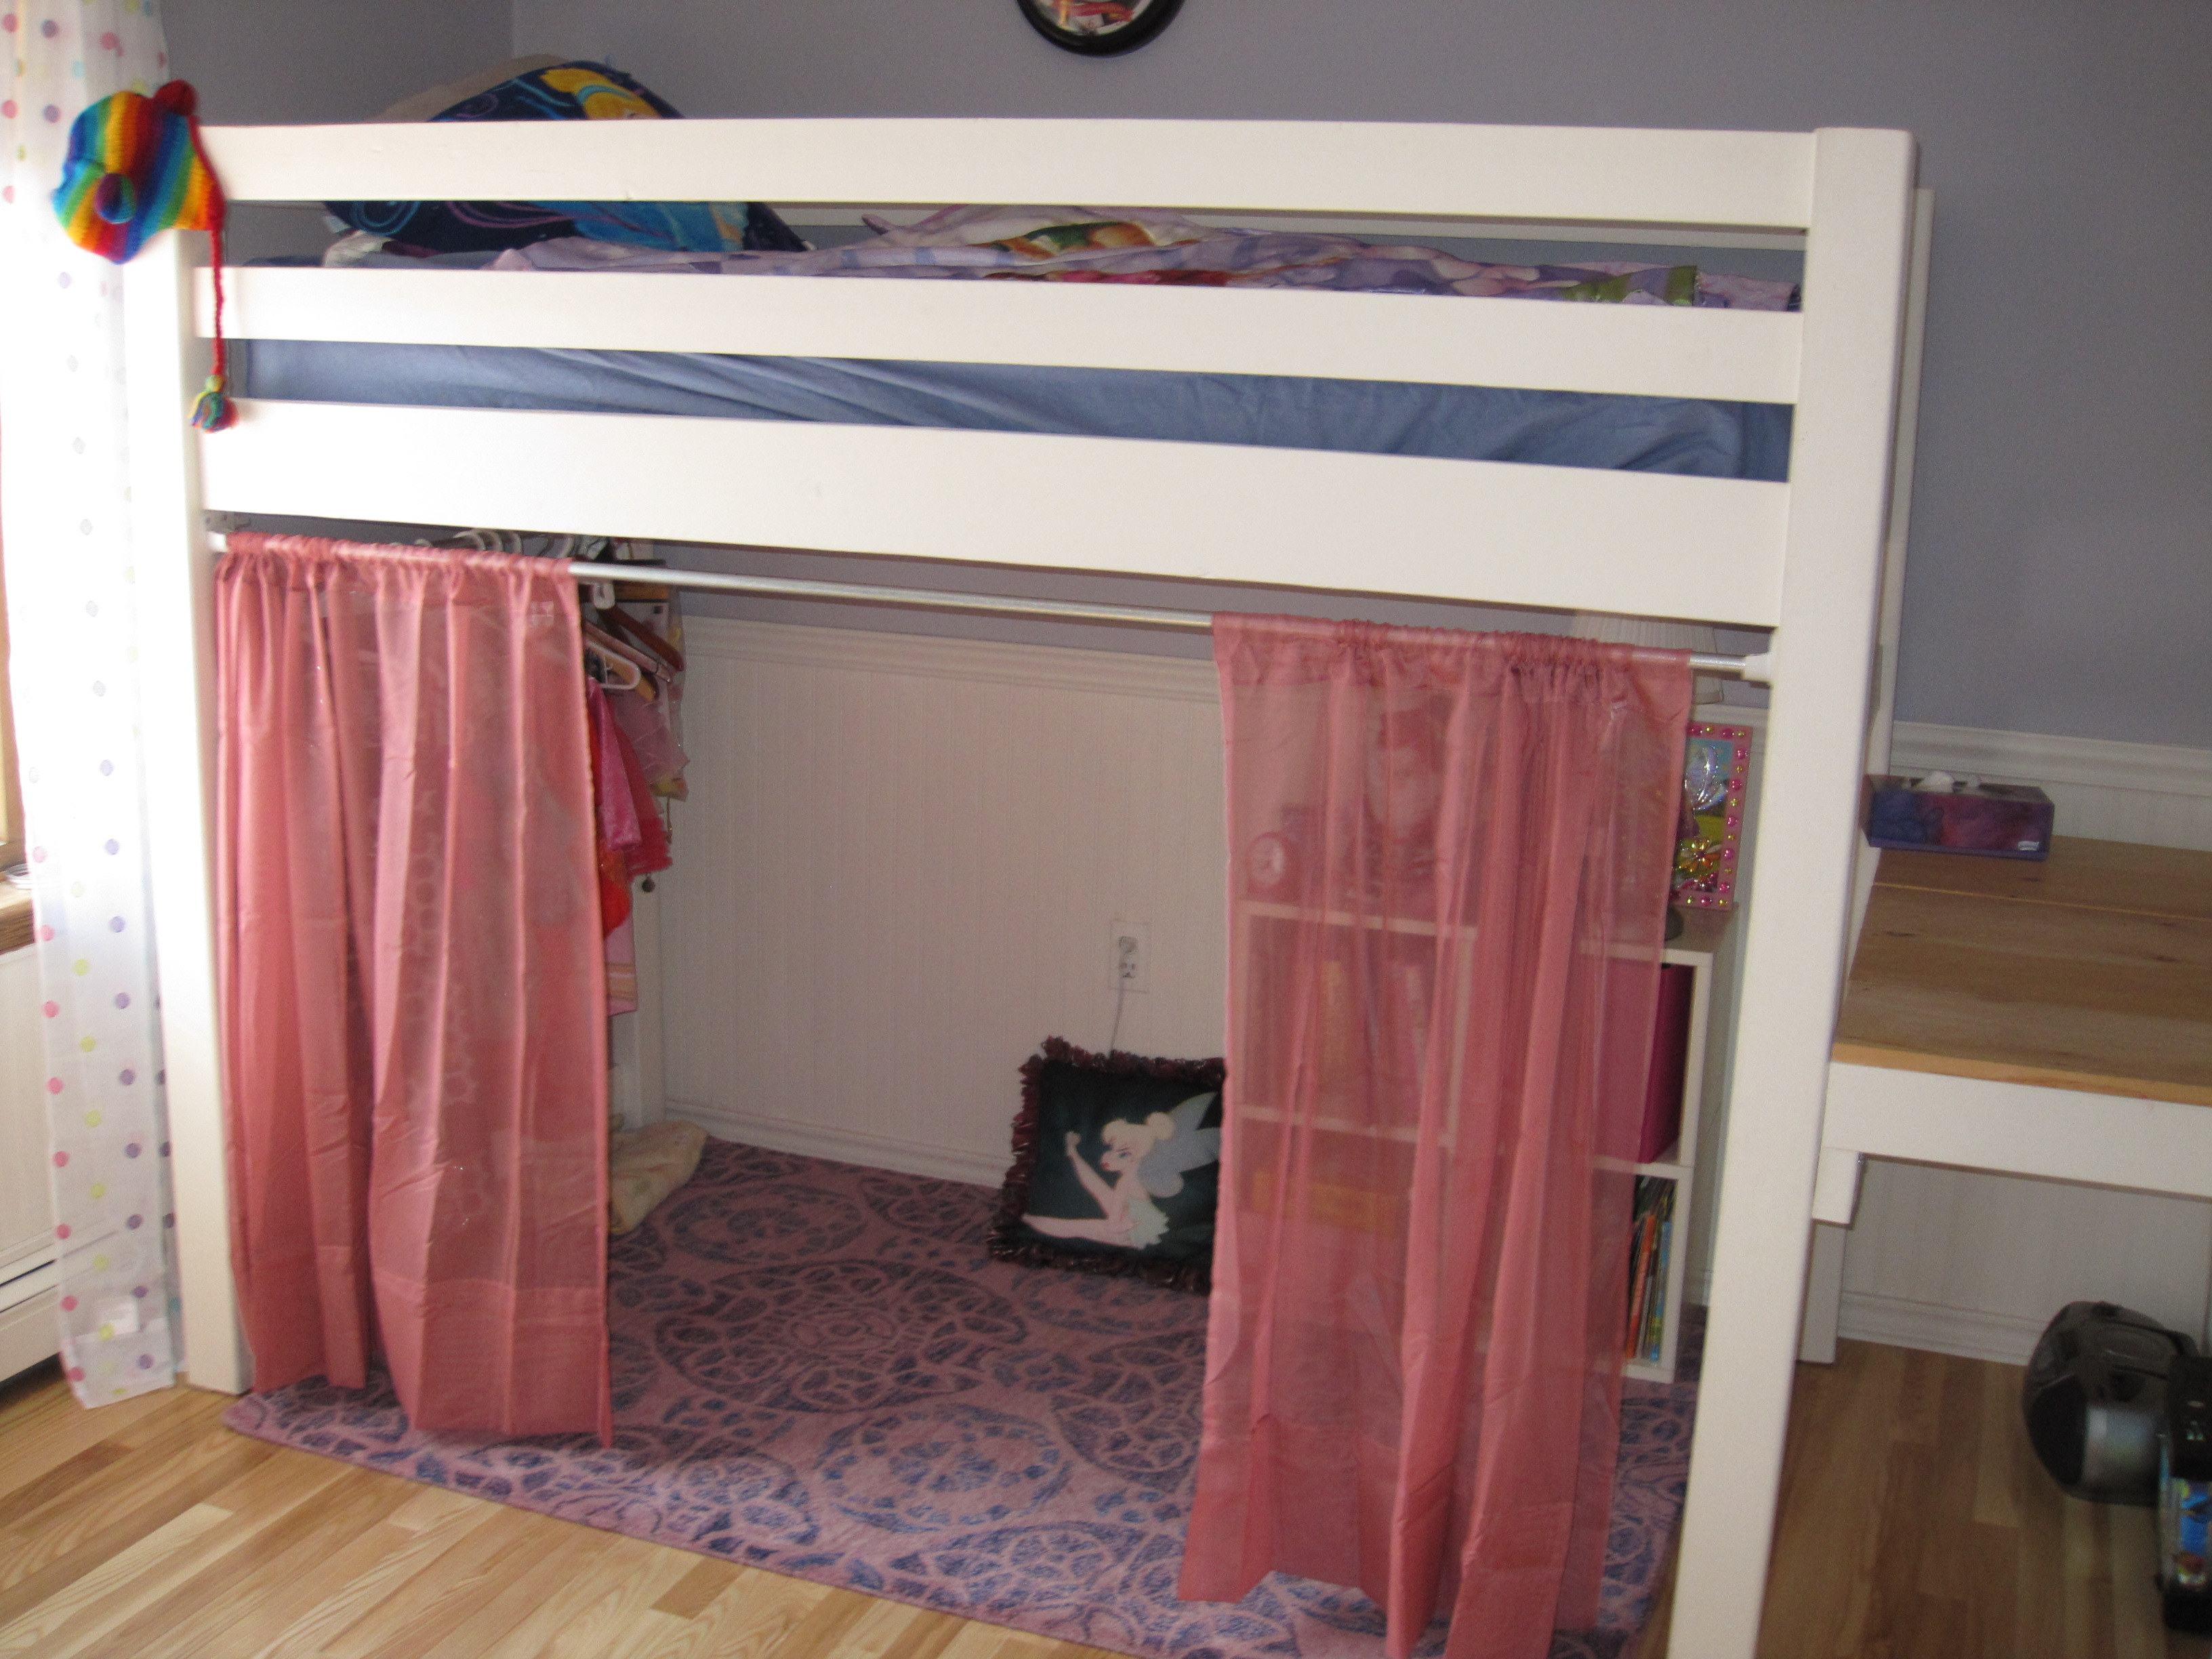 Bunk Bed Curtains | Diy Bunk Bed Curtains | Bunk Beds Tent : bunk beds tents - memphite.com